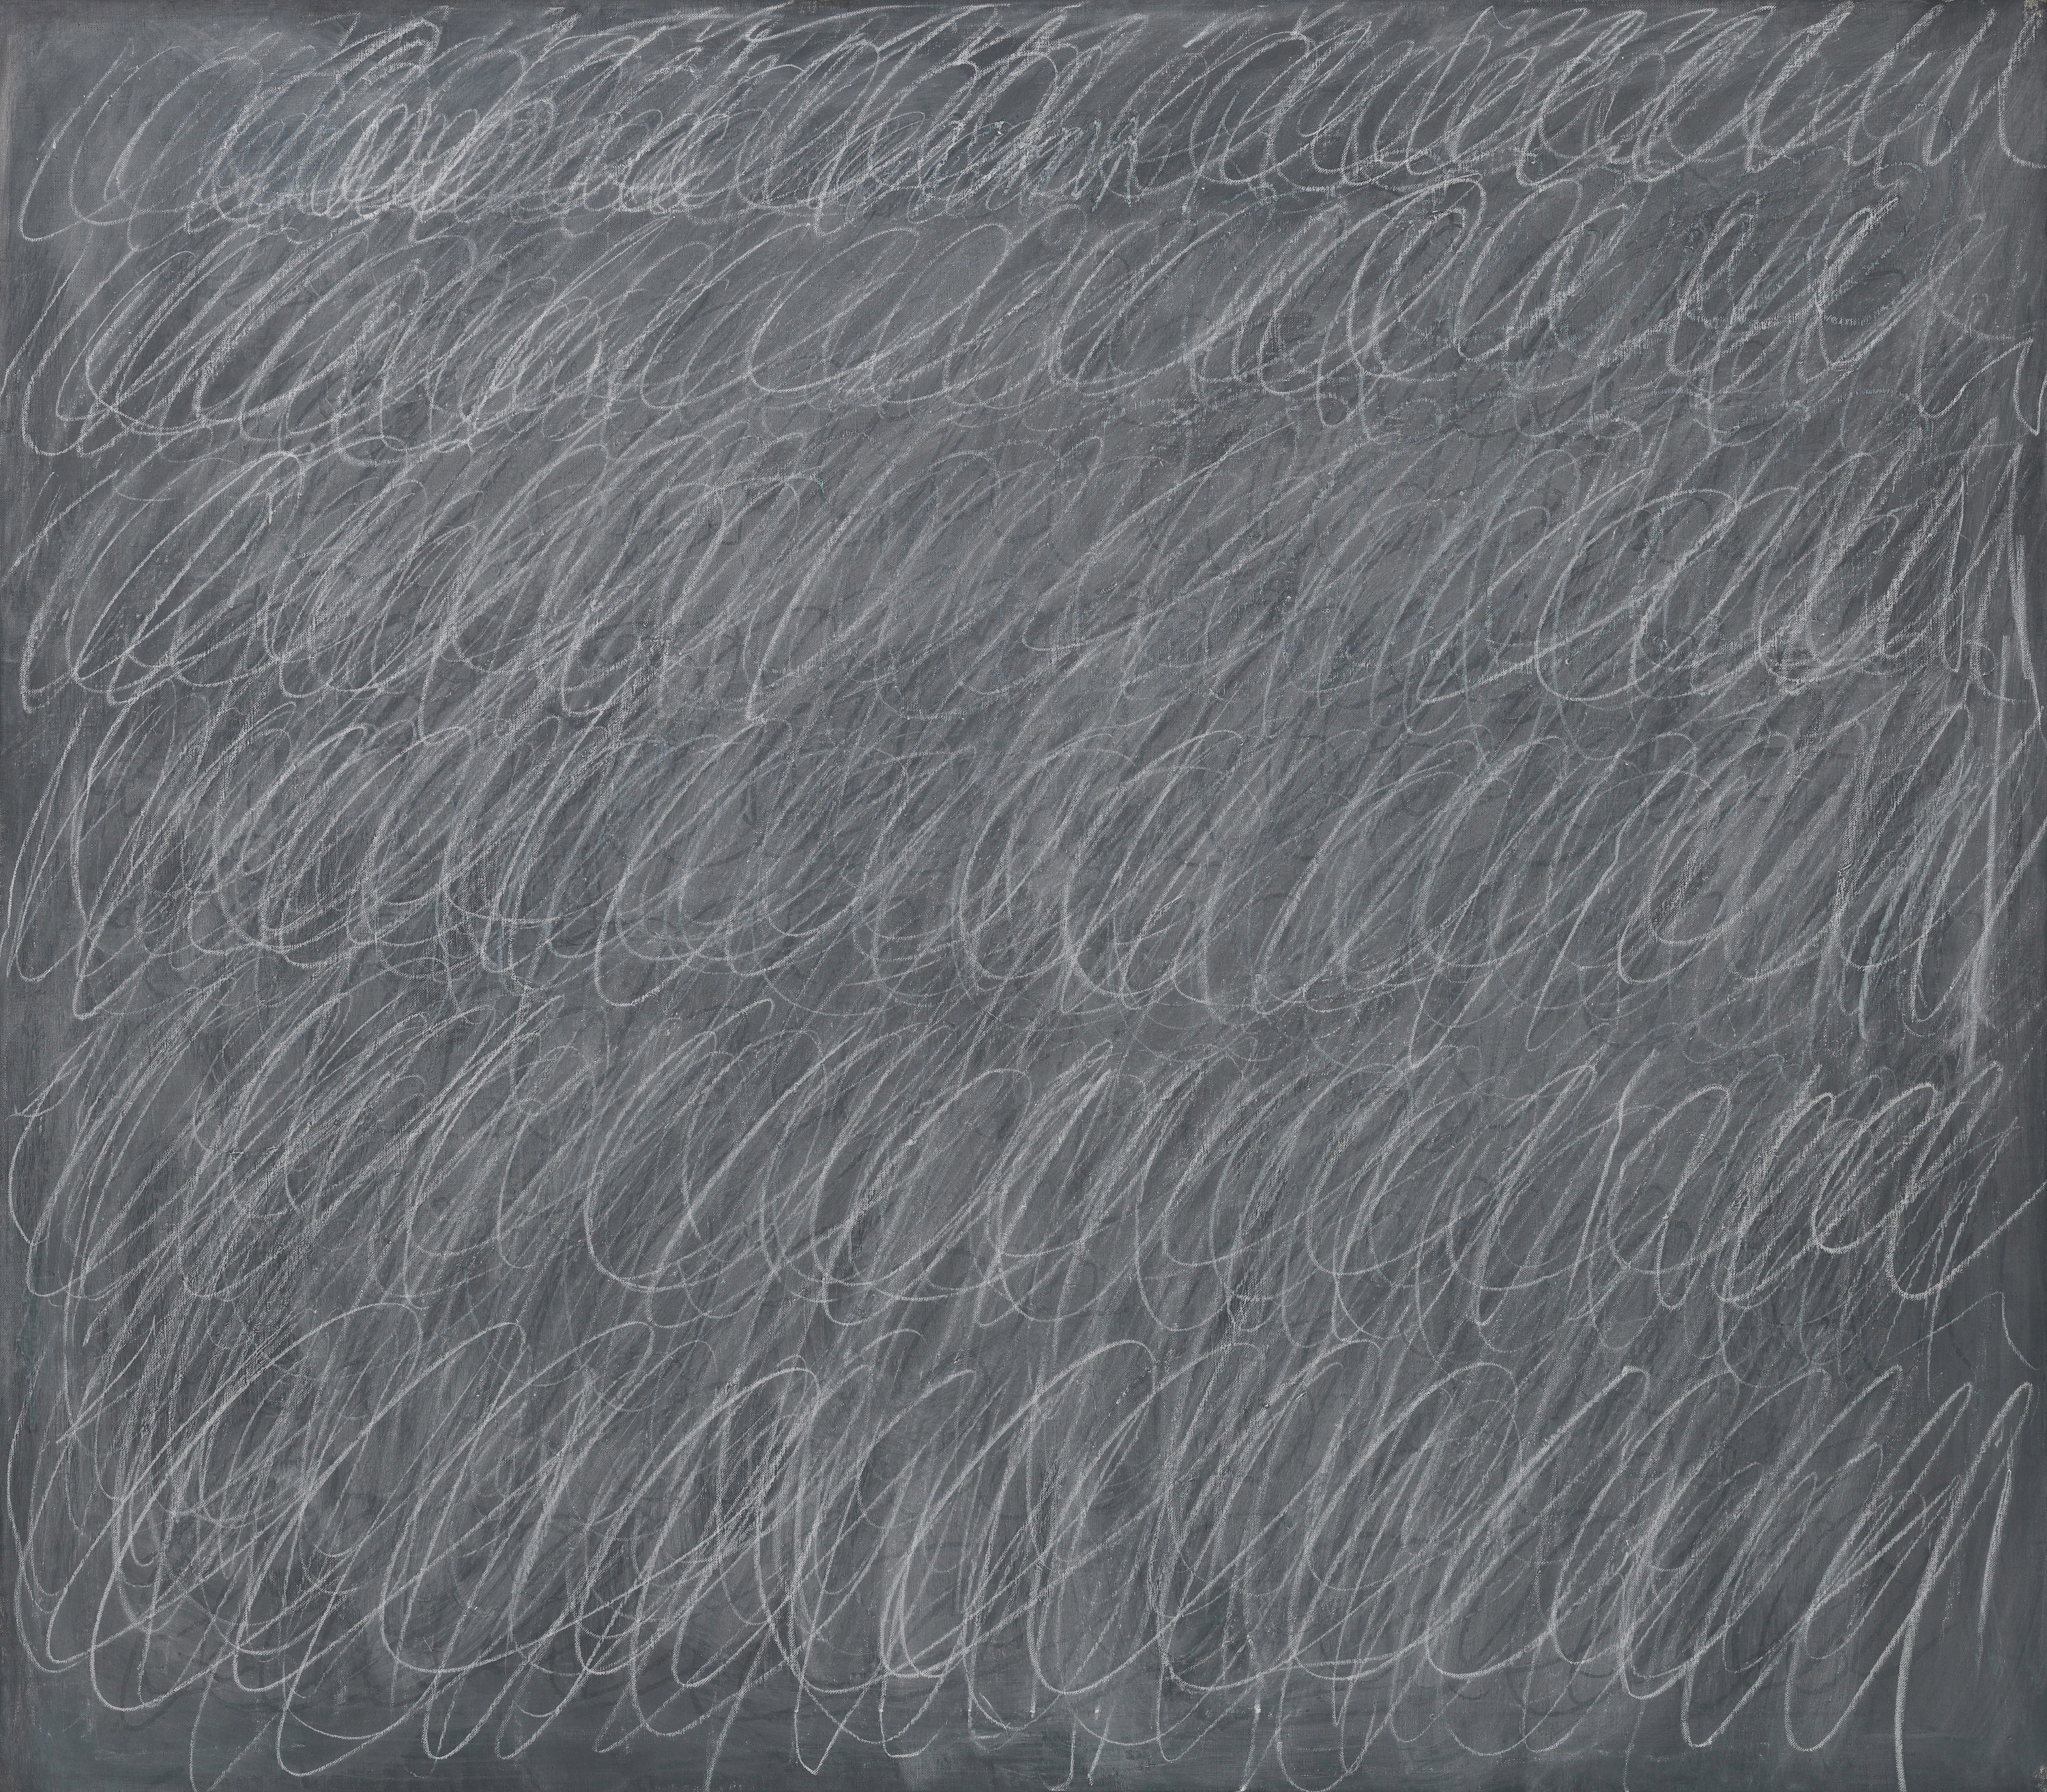 Untitled (1967), 1967 — Cy Twombly